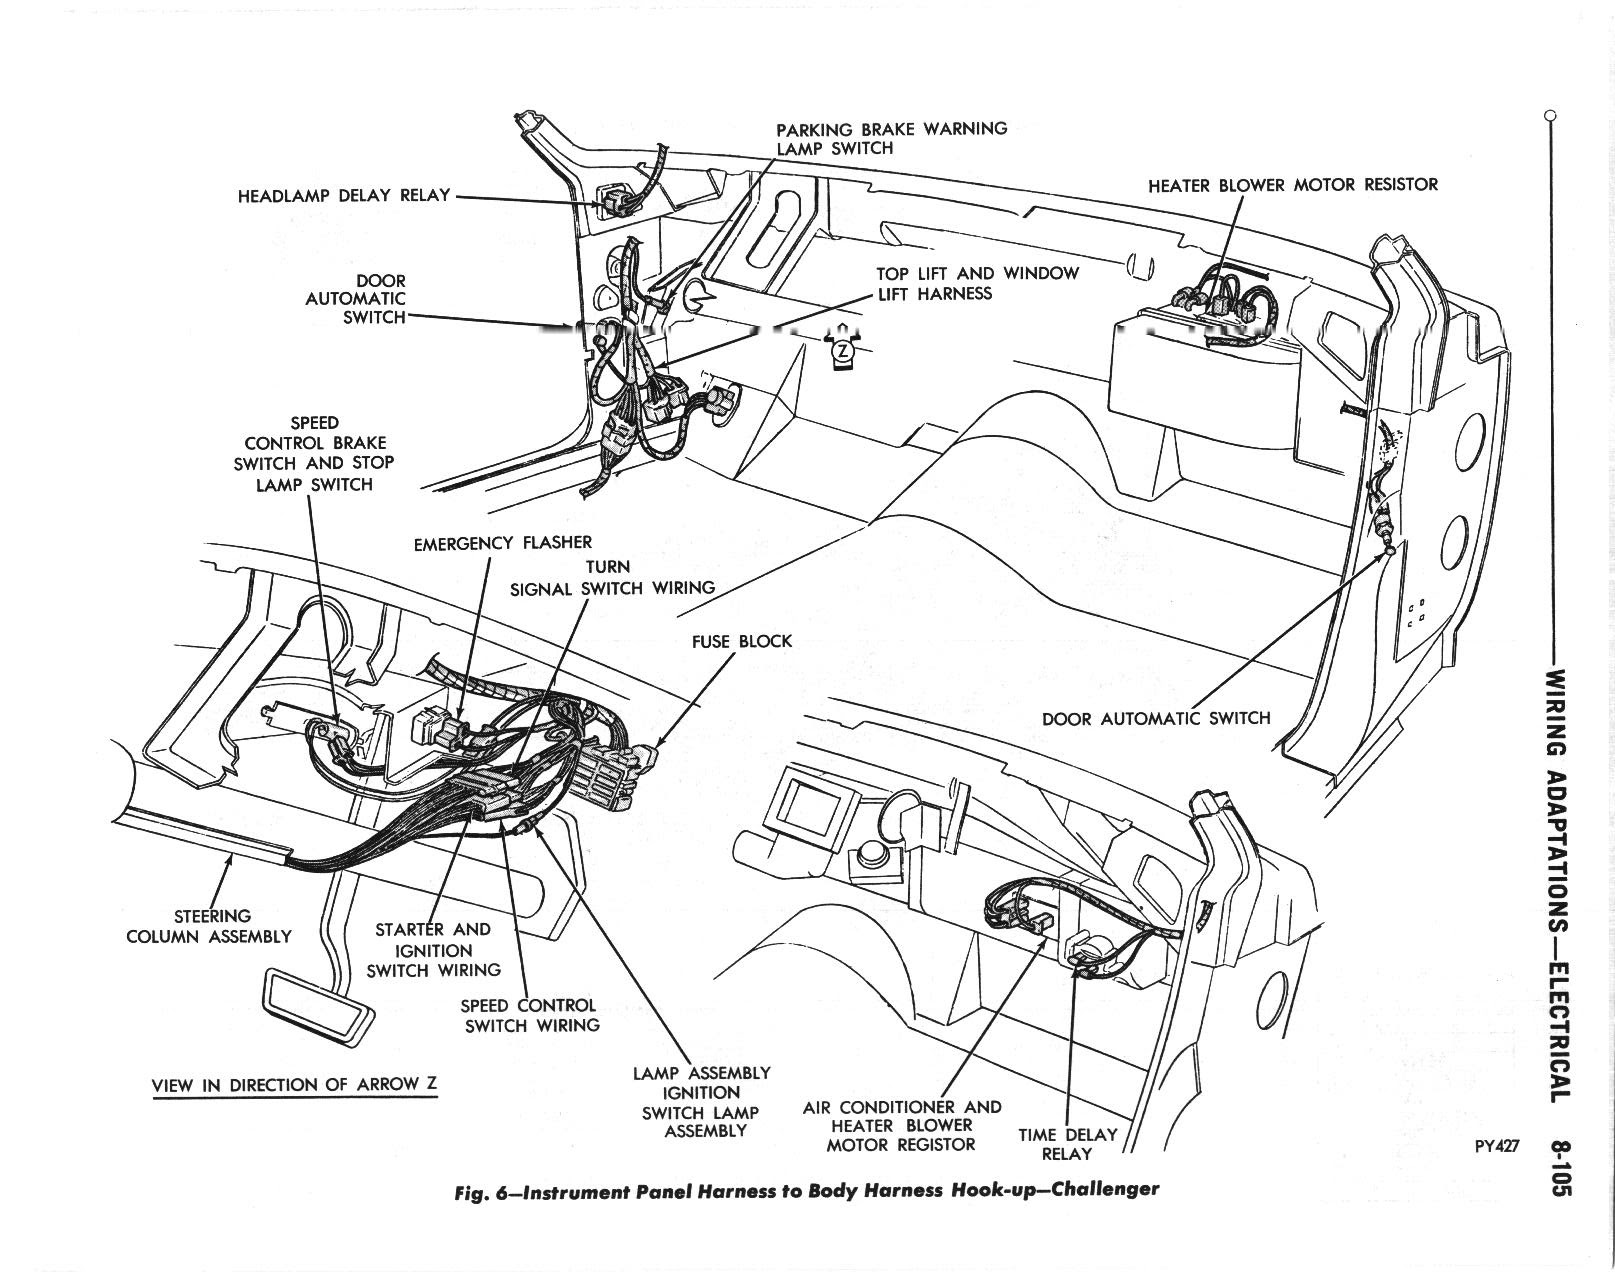 1970 Challenger Wiring Diagrams The Dodge Challenger Message Board